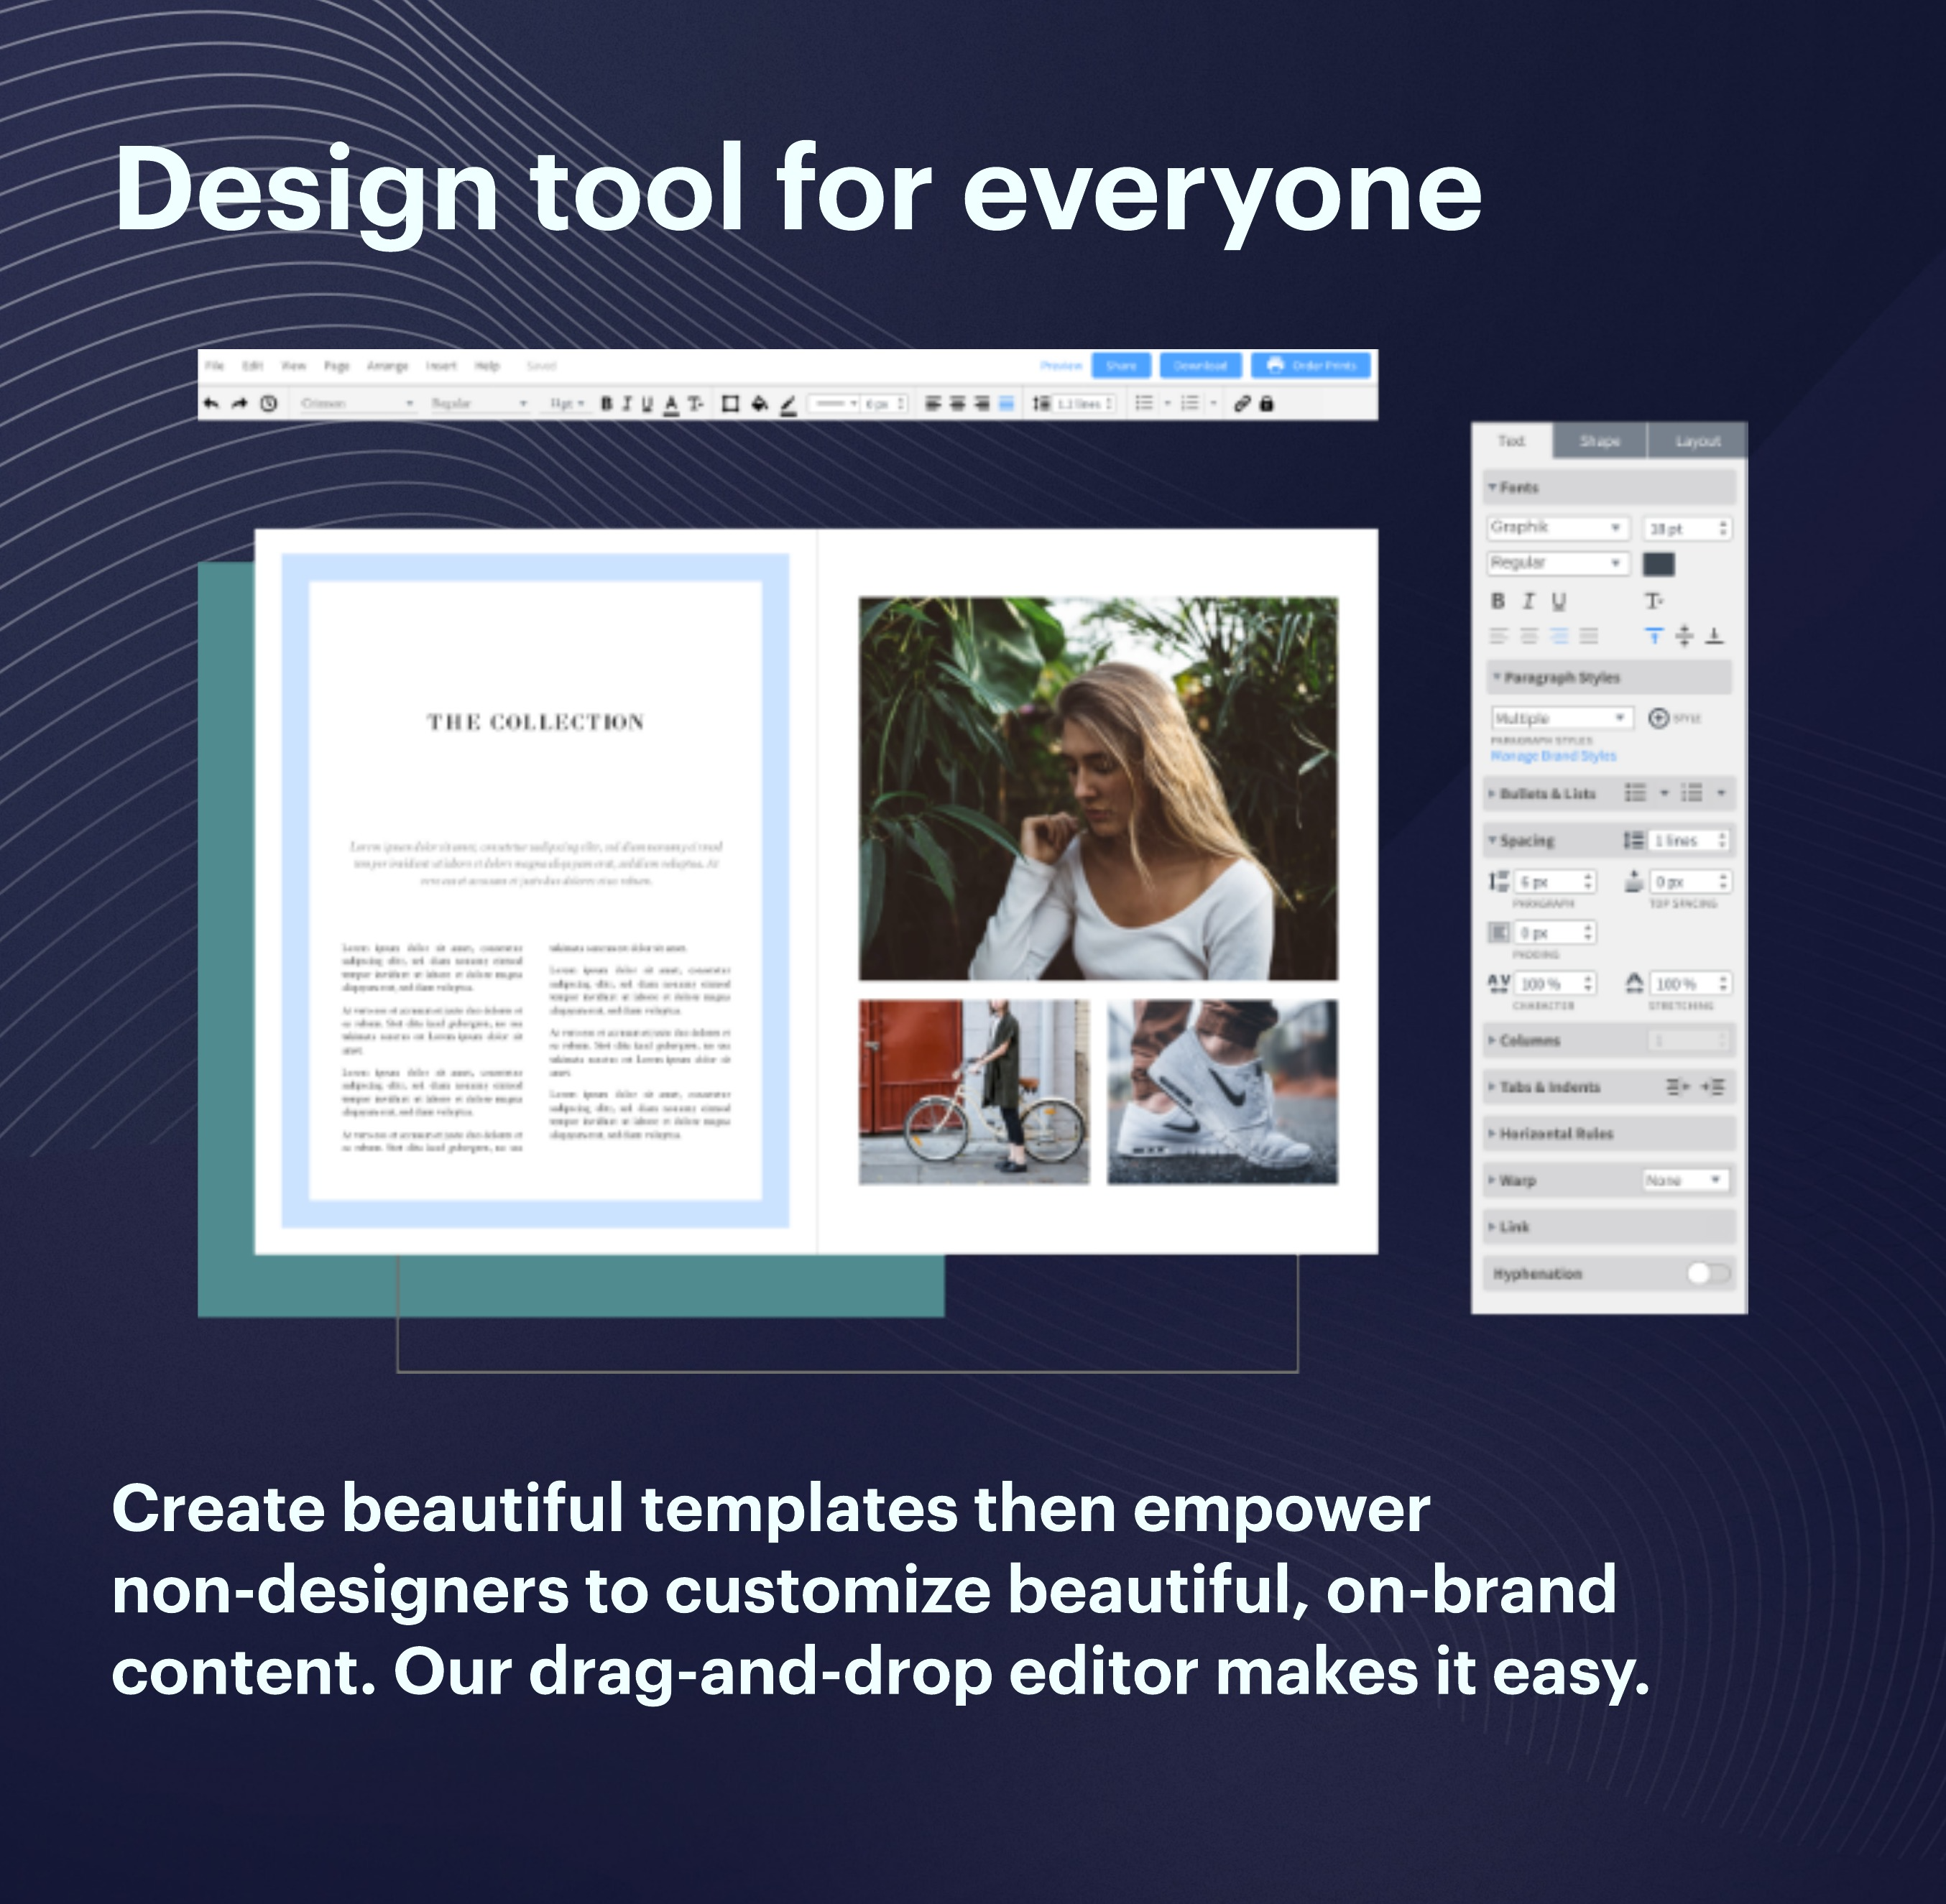 Lucidpress screenshot: Create beautiful templates then empower non-designers to customize beautiful, on-brand content. Our drag-and-drop editor makes it easy.